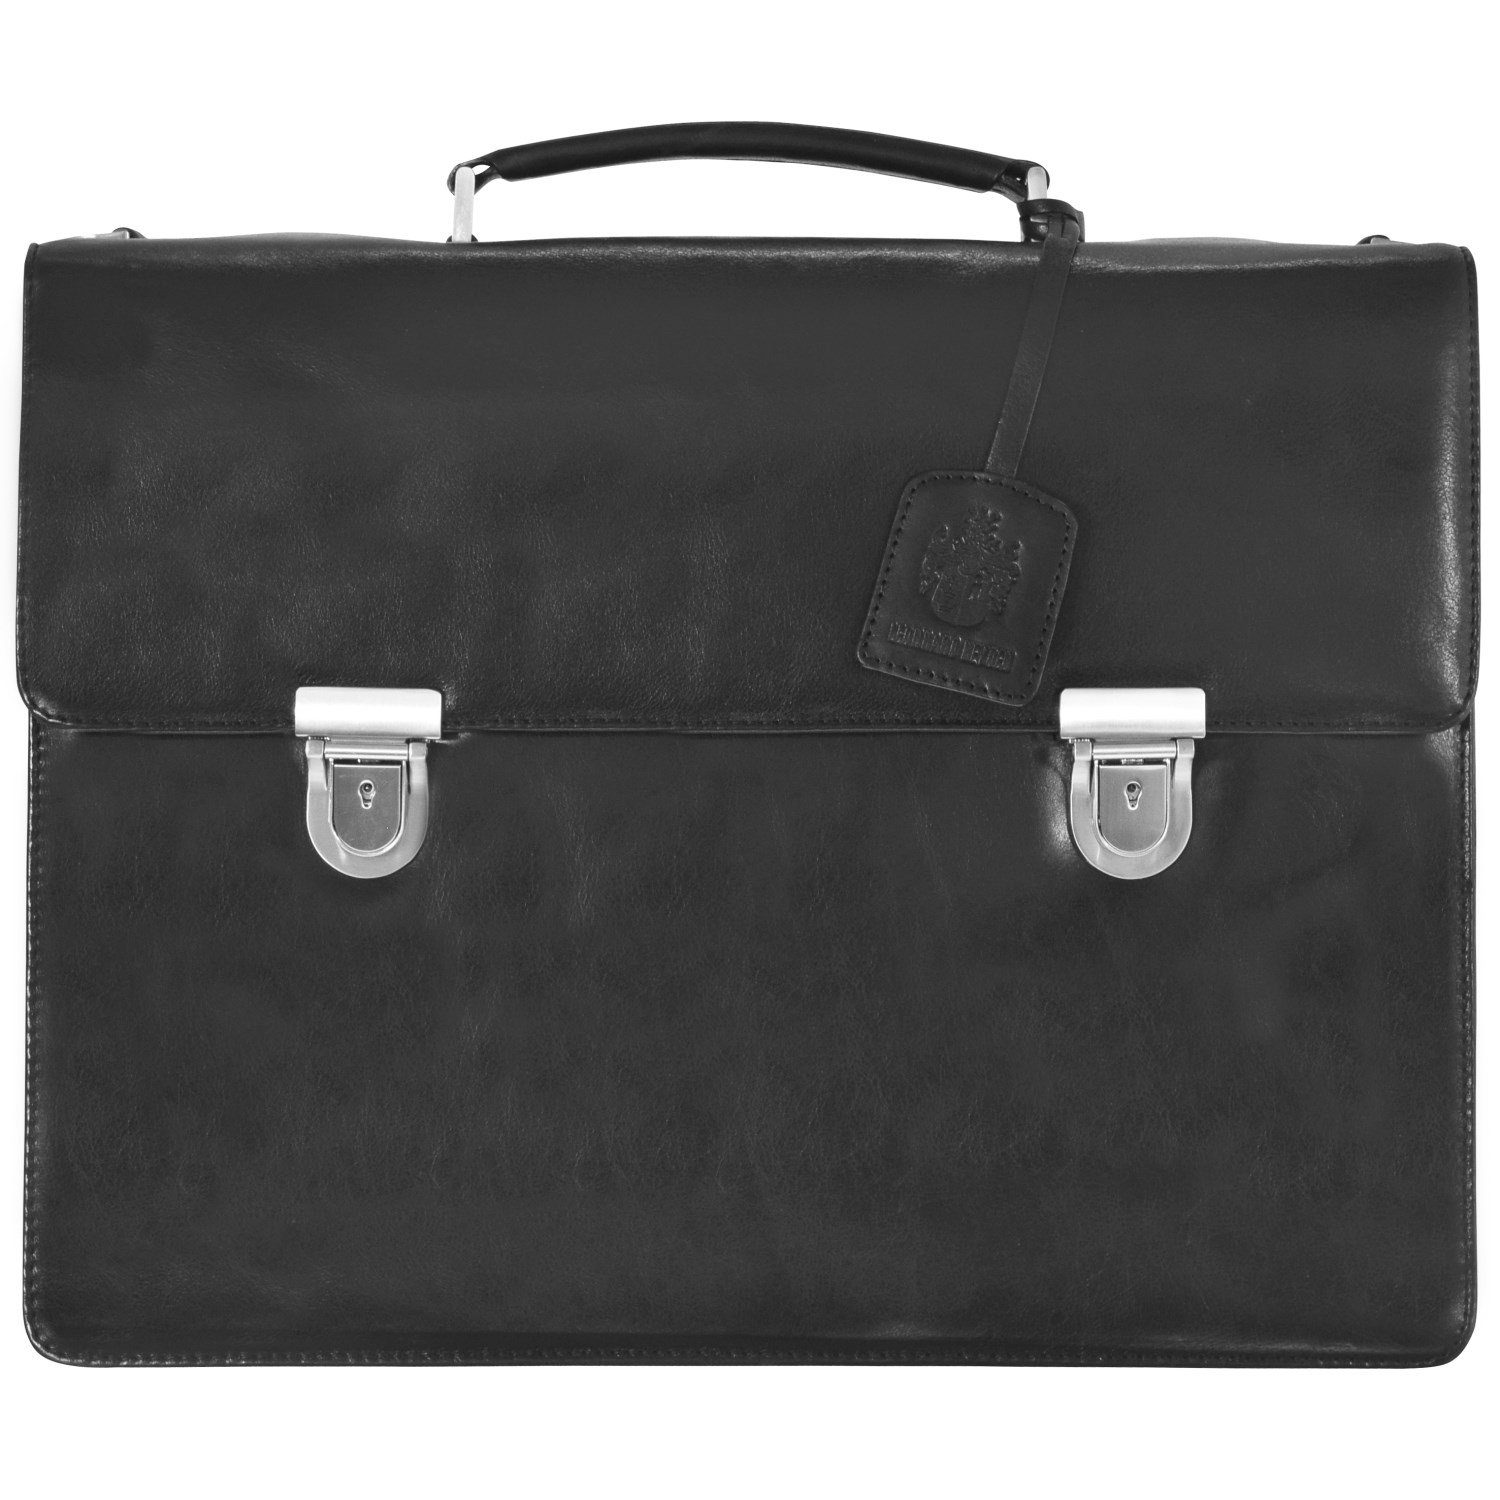 Leonhard Heyden Cambridge Aktentasche Leder 42 cm Laptopfach